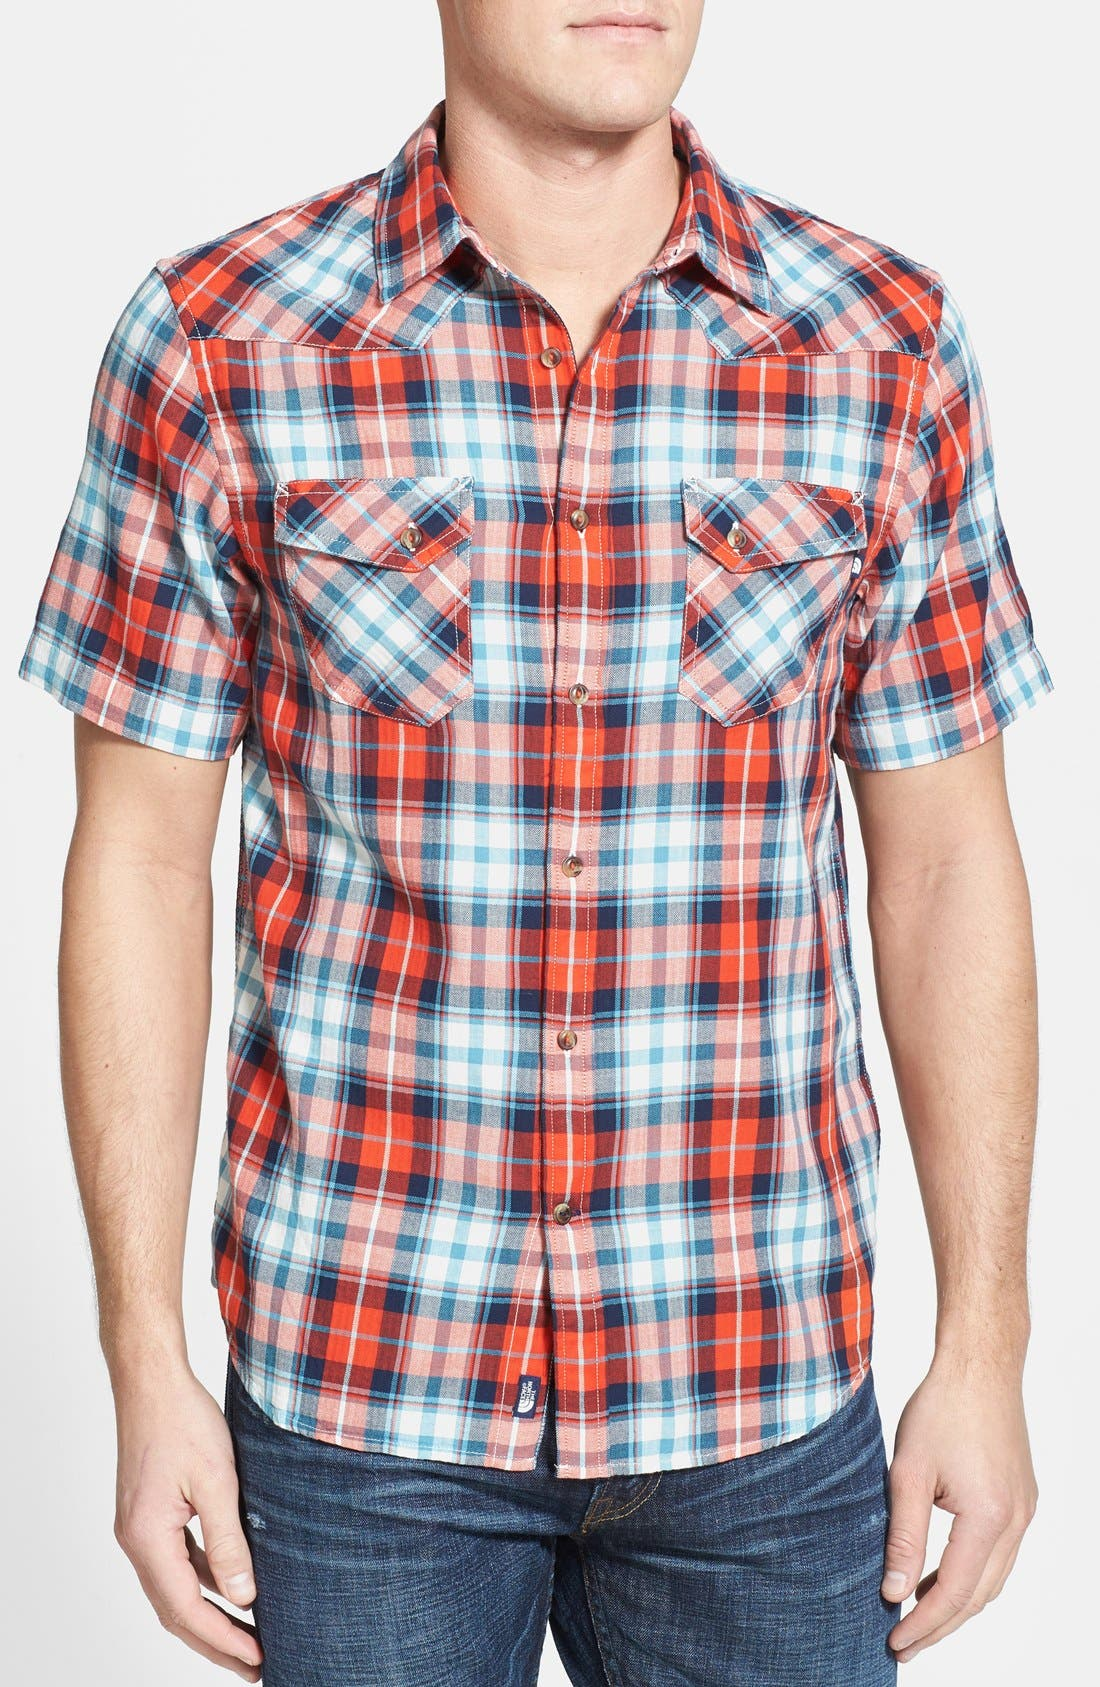 Alternate Image 1 Selected - The North Face 'Marzo' Slim Fit Short Sleeve Plaid Sport Shirt